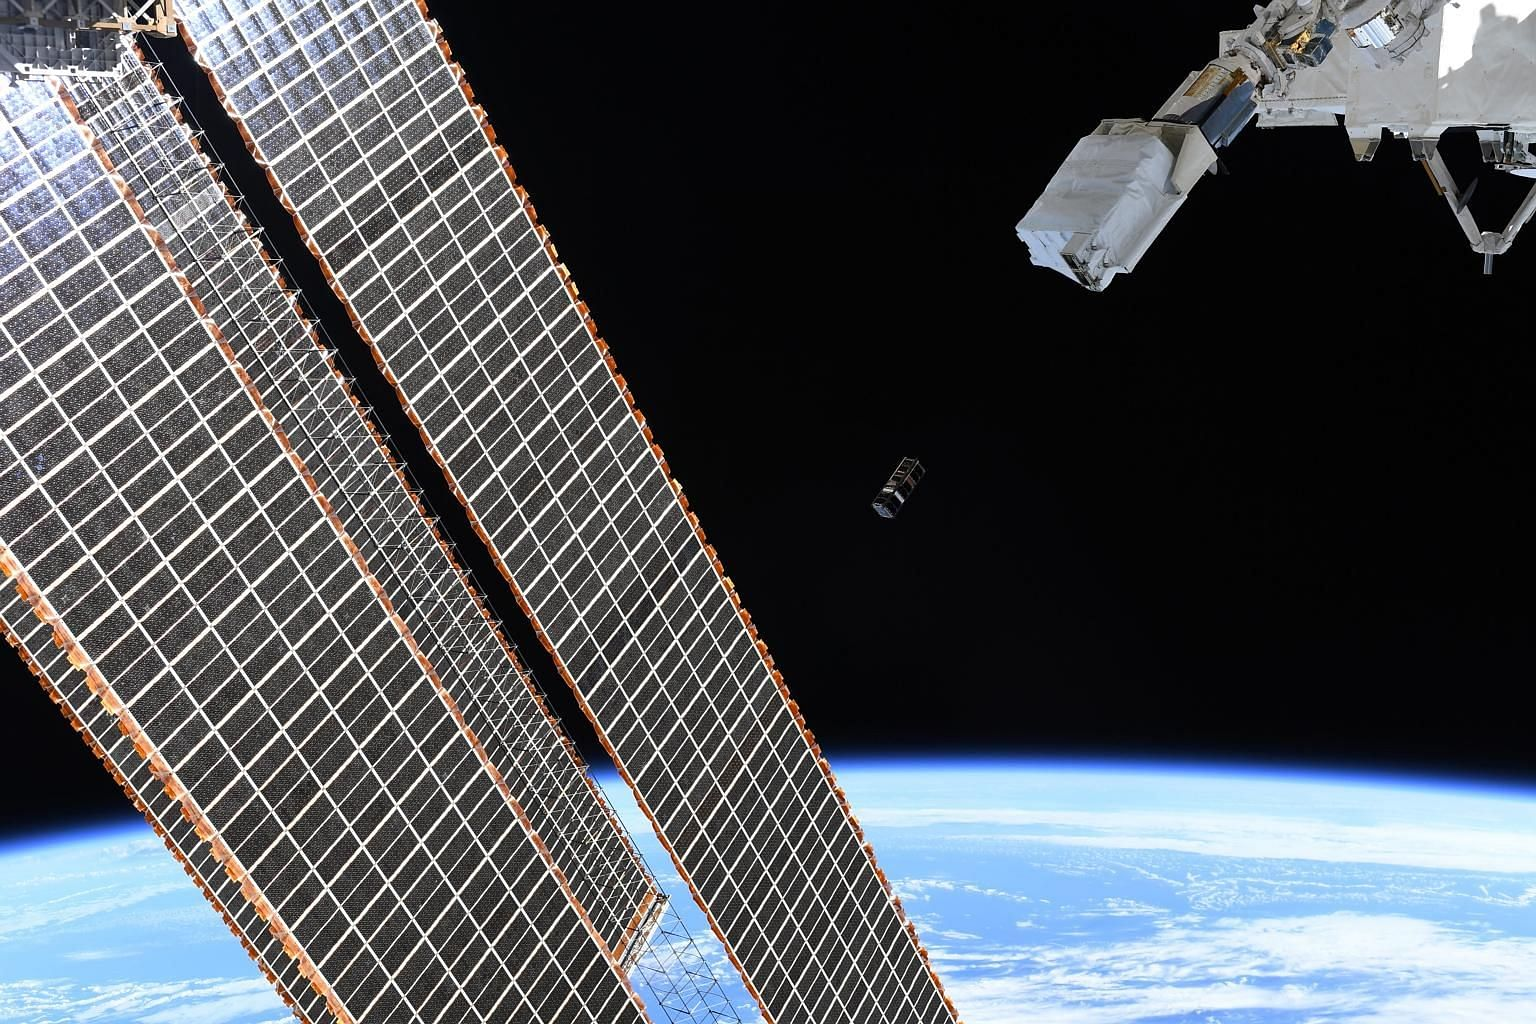 SpooQy-1 being ejected from the Japanese Small Satellite Orbital Deployer past the International Space Station's (ISS) solar arrays. This Nasa photograph was taken by an astronaut on the ISS.